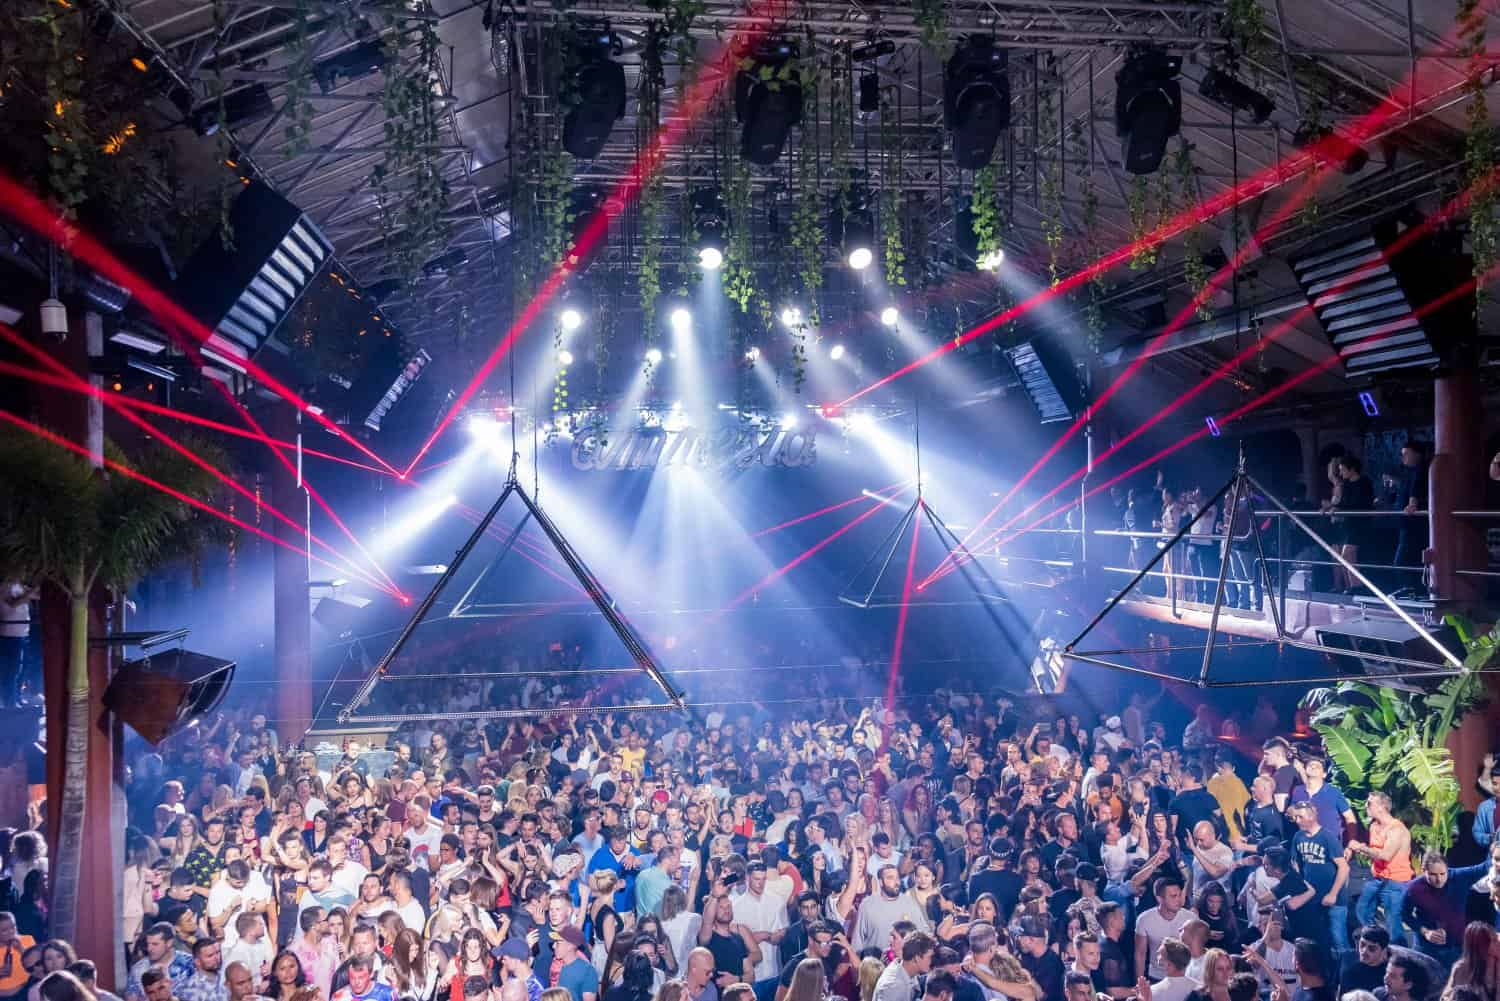 Amnesia Ibiza 2020 - Tickets, Events and Lineup 14